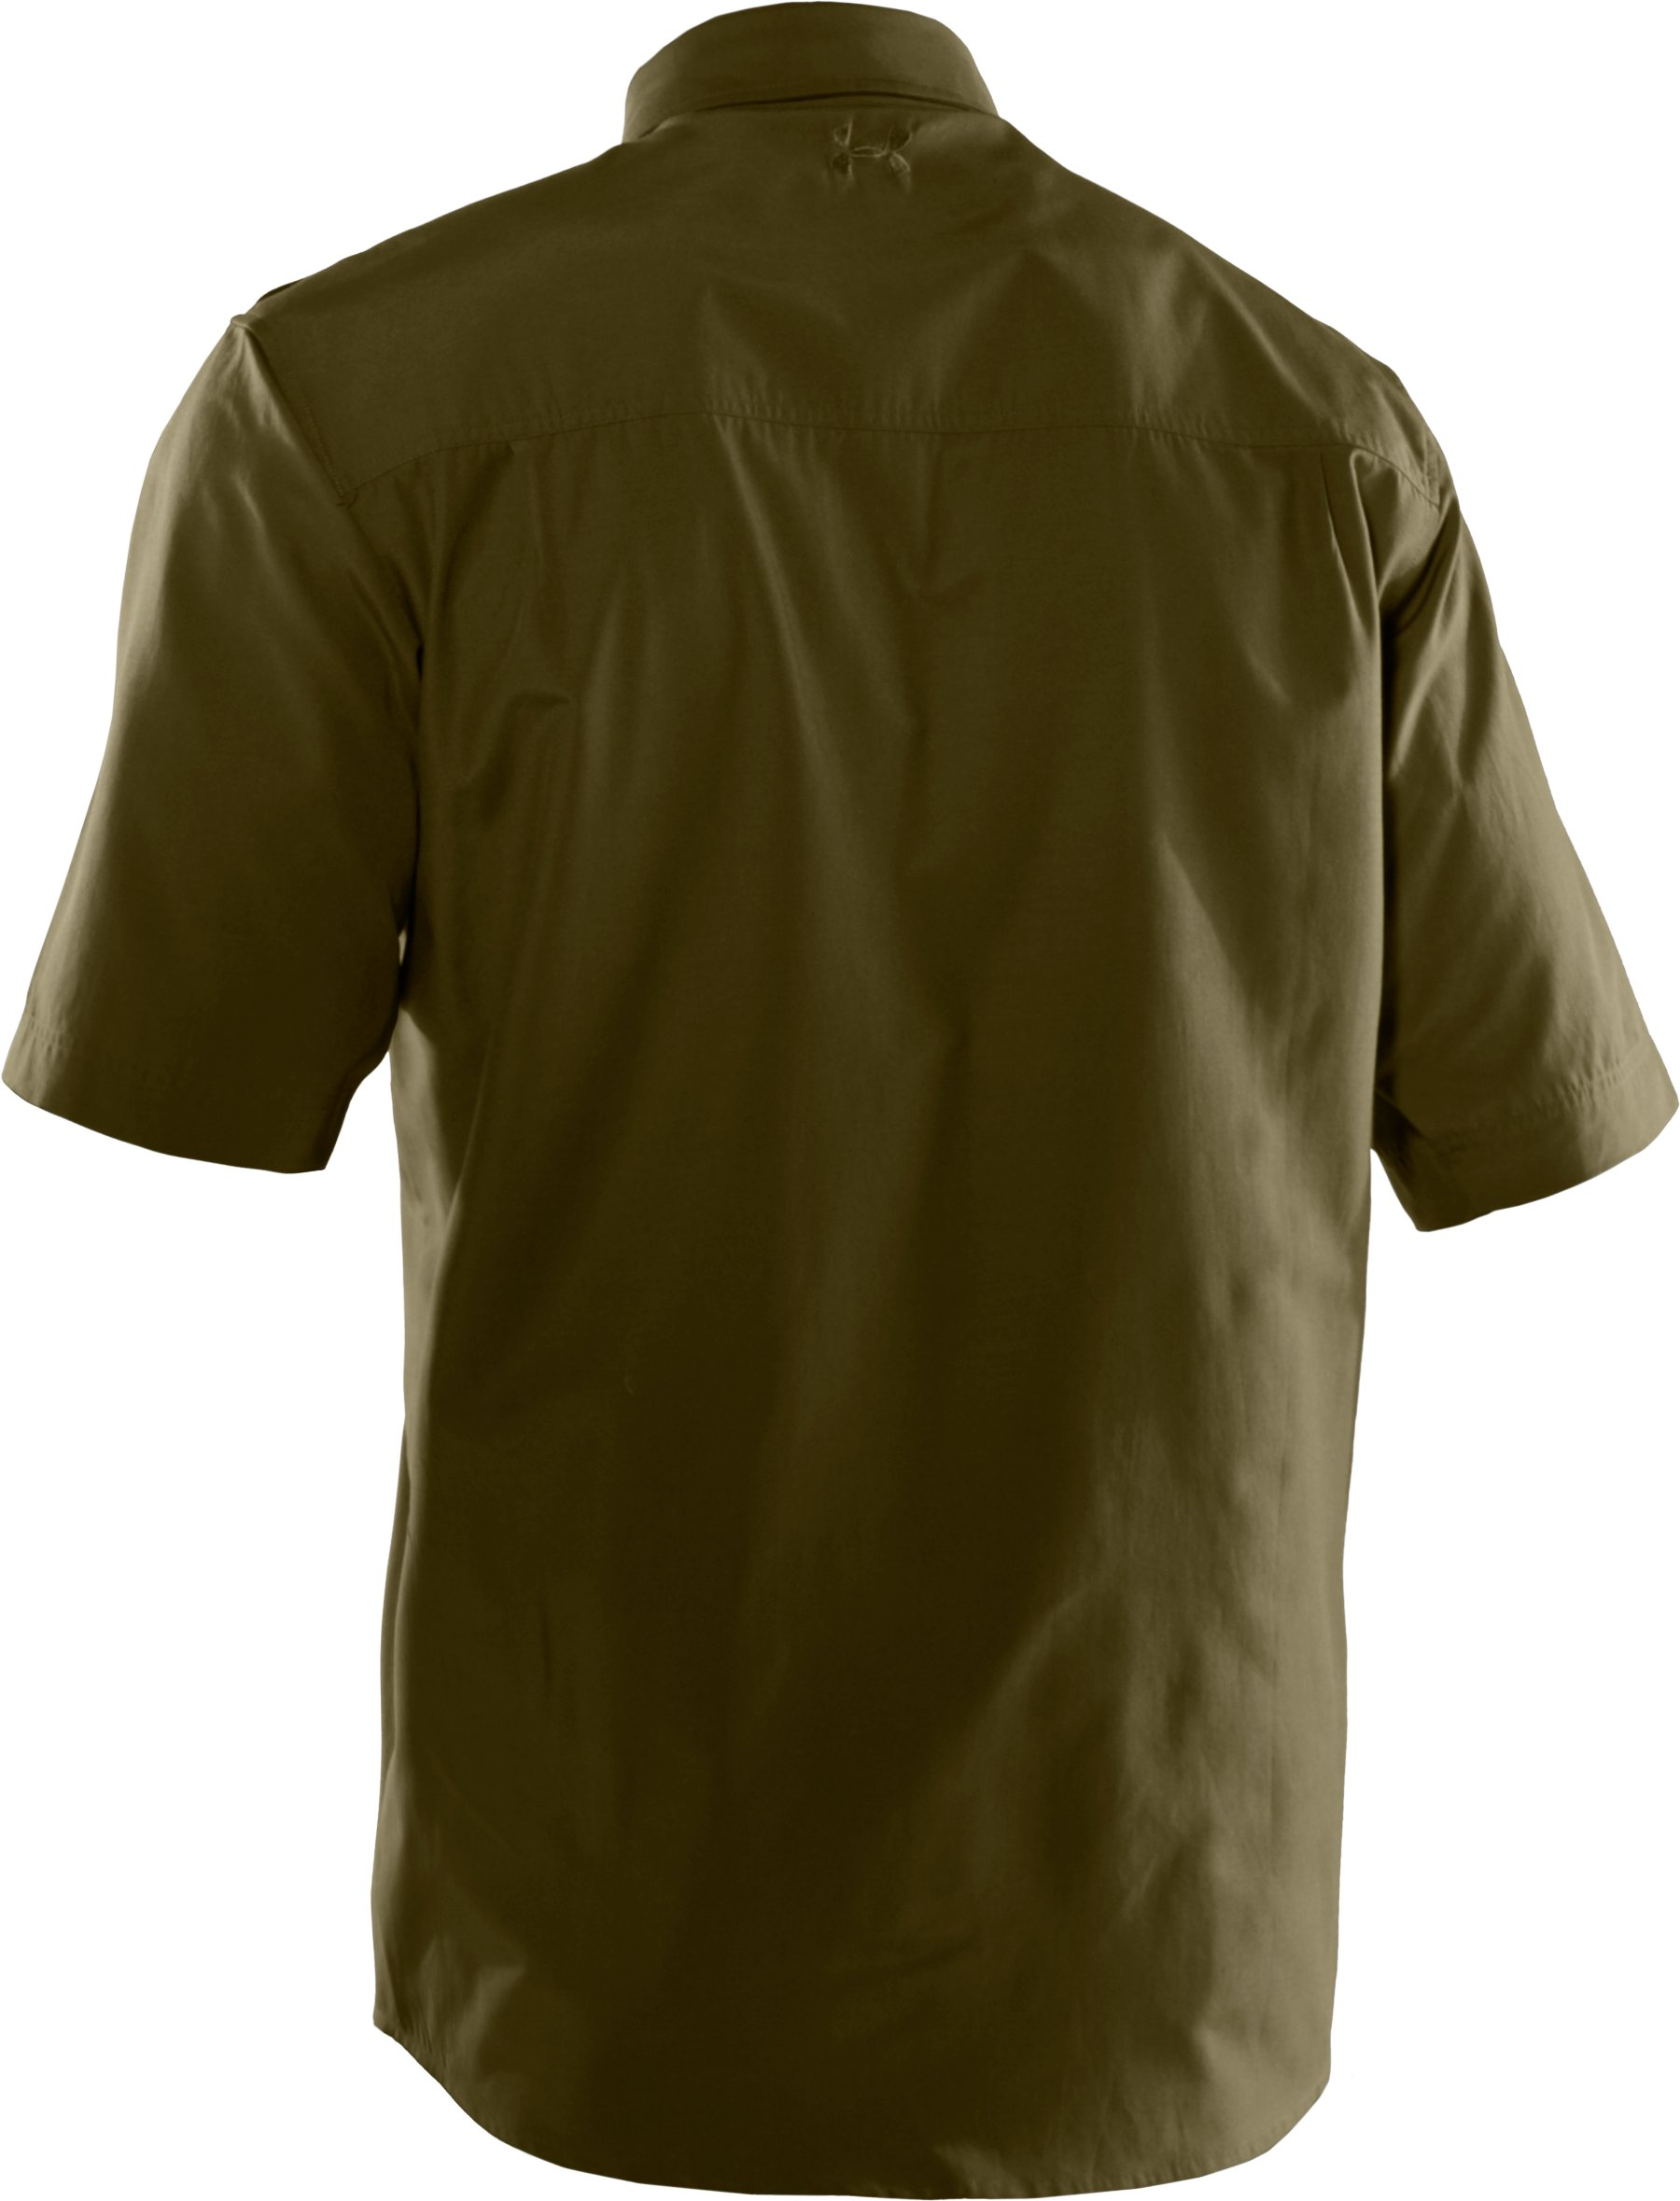 Men's Counter Short Sleeve Tactical Shirt, Marine OD Green,